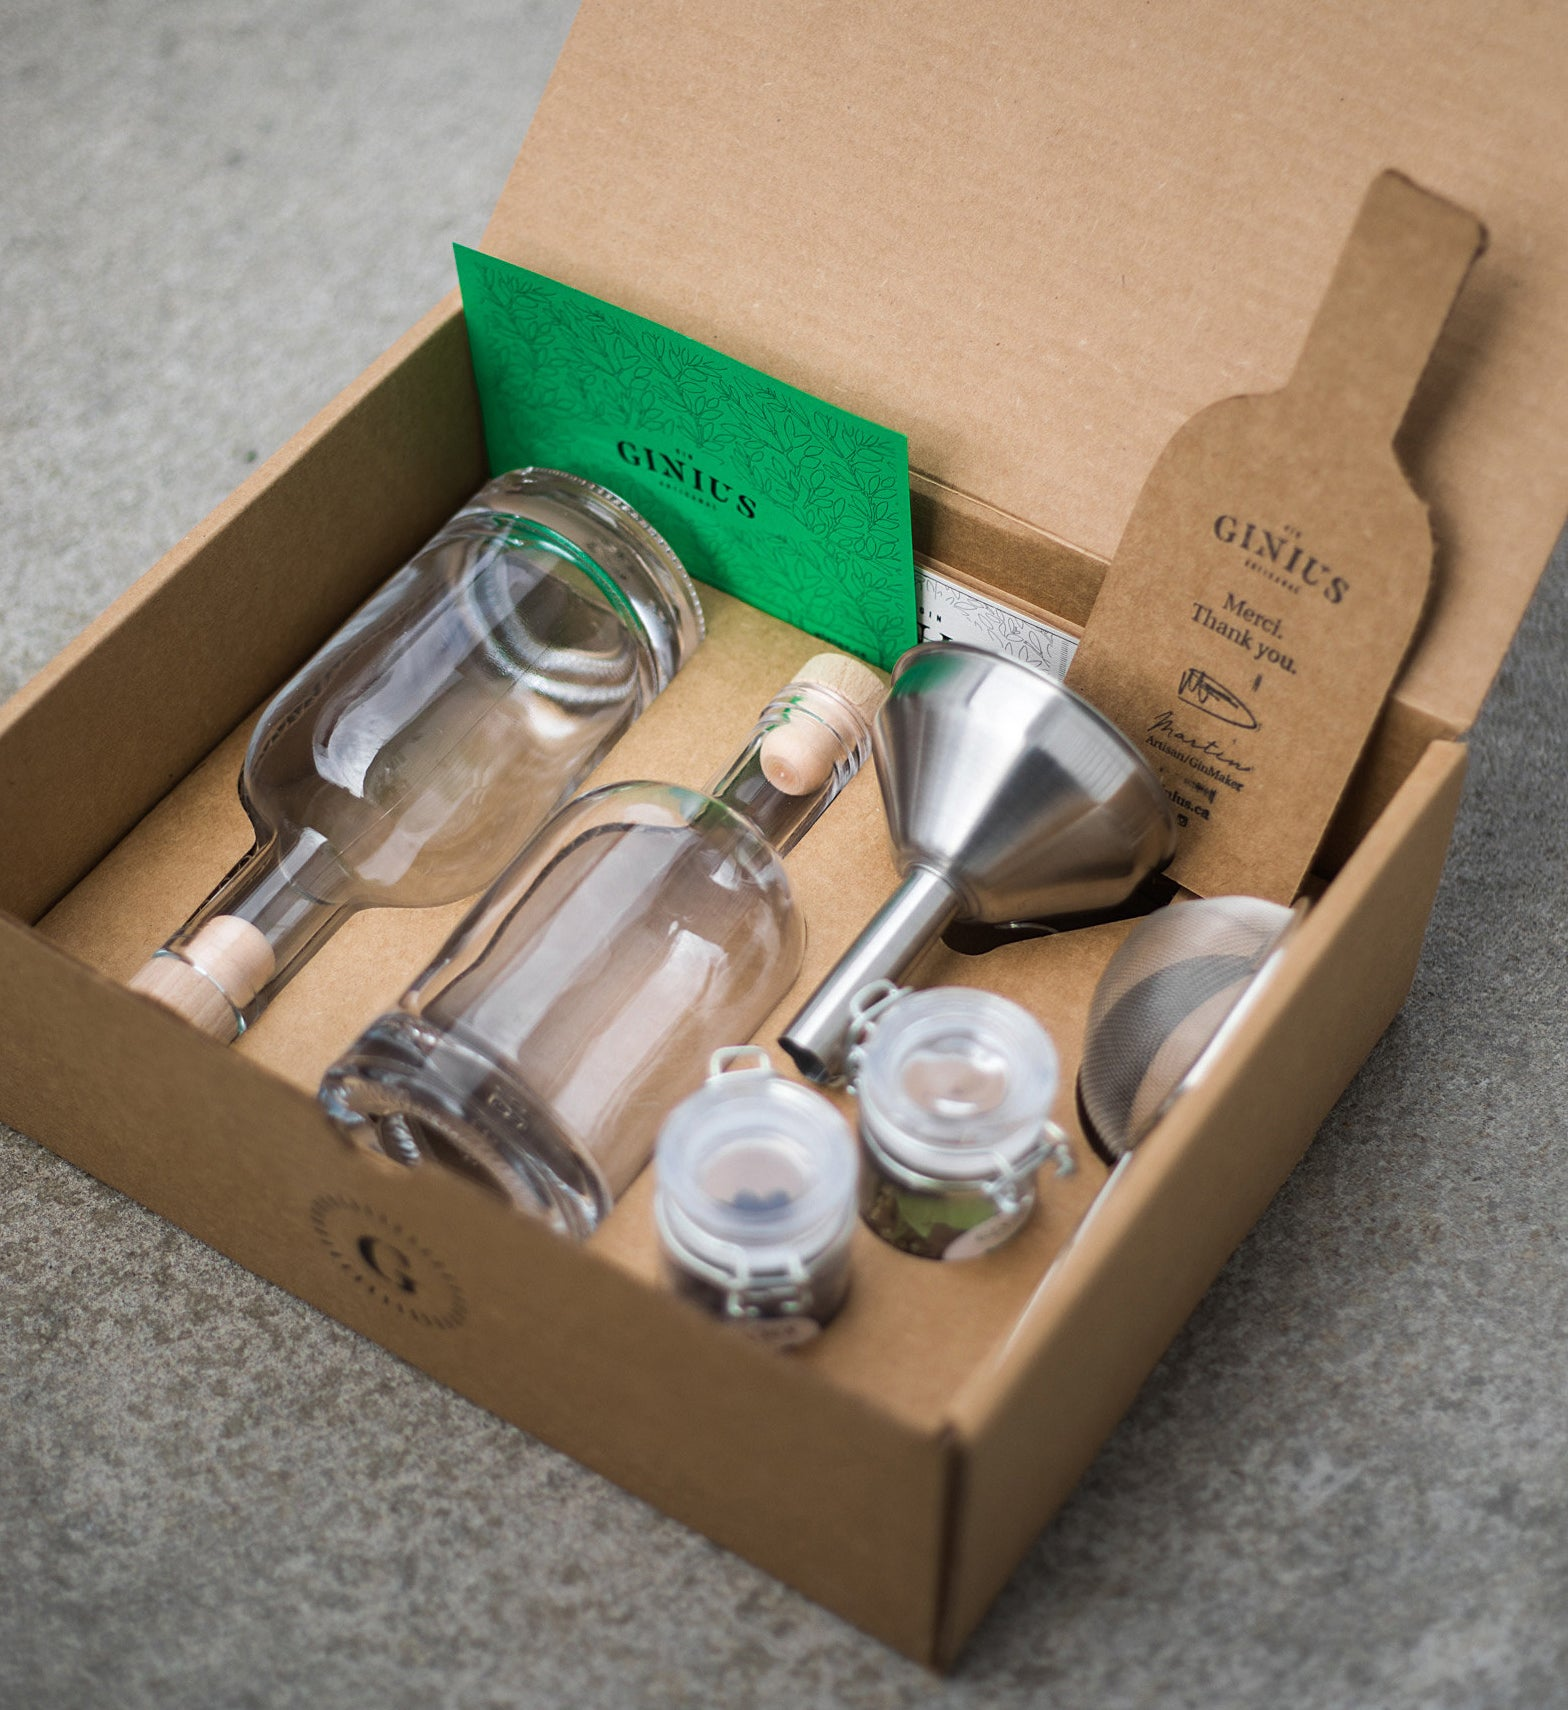 The gin kit in a box